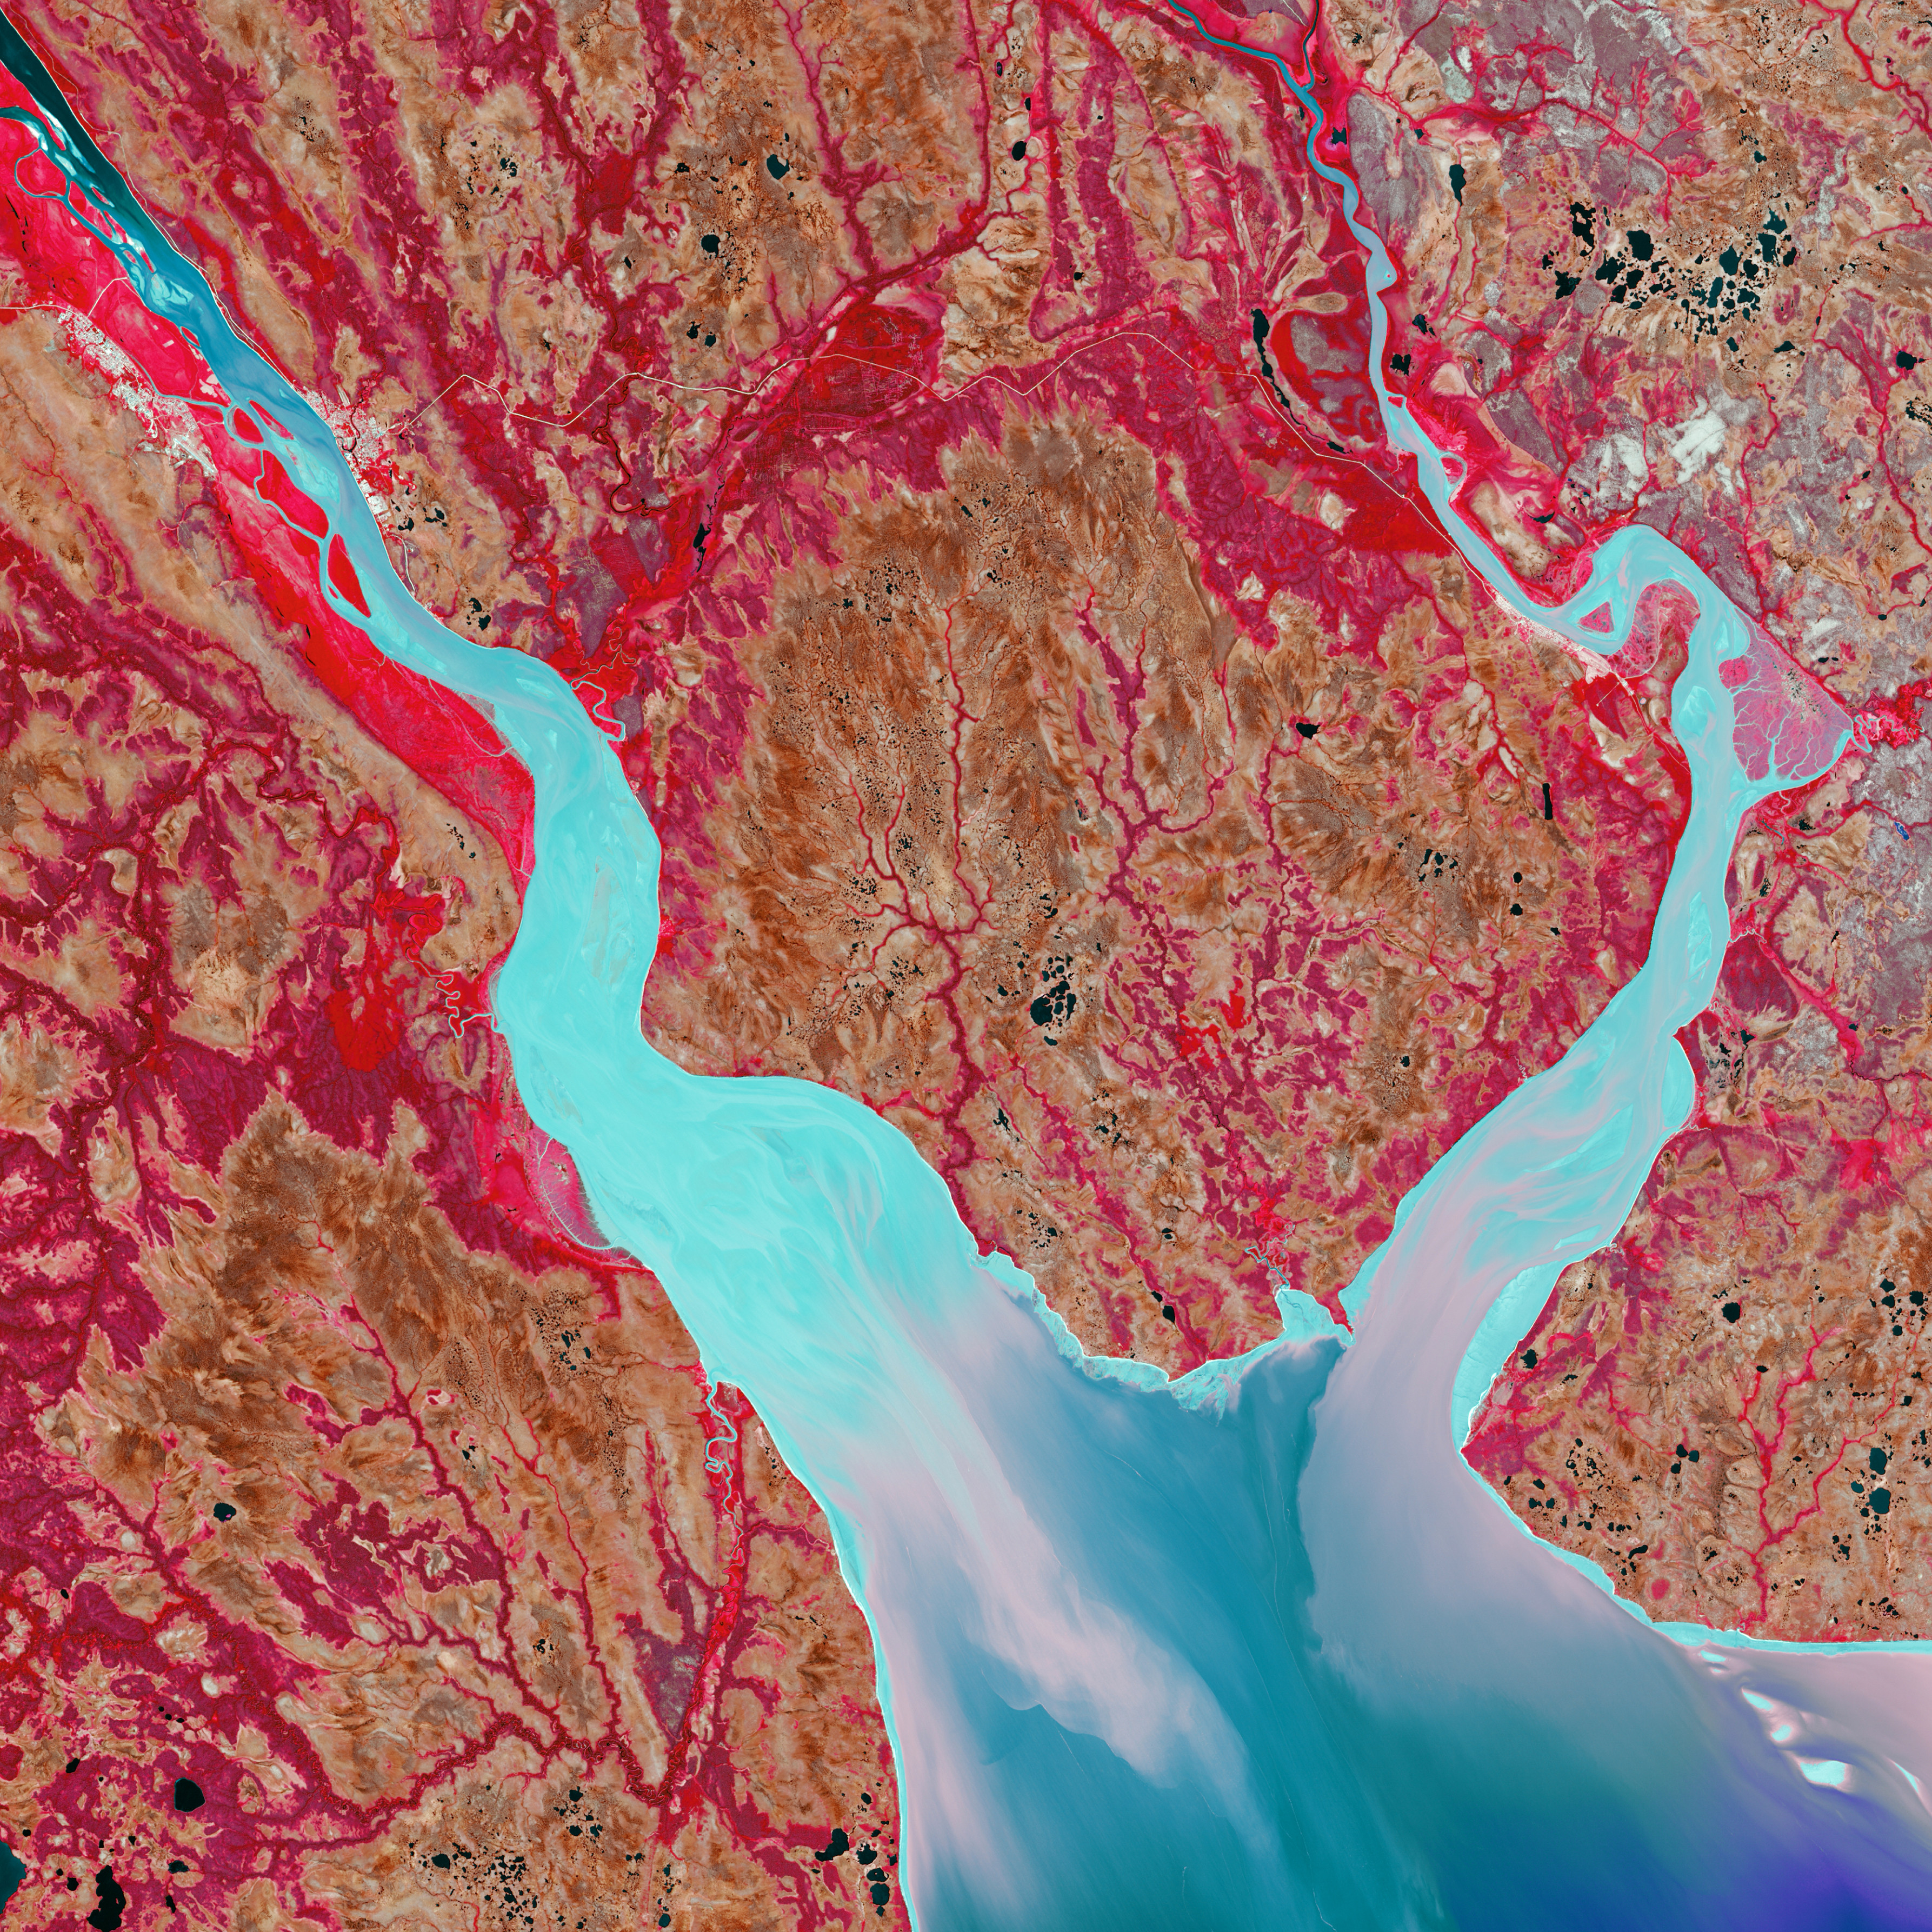 In northern Russia, the freshwater of the Mezen River meets the saltwater of the Arctic Ocean. The funnel-shaped estuary has a strong tidal current that mixes sediment in the water rather than building up a delta. In this colourful composition, the increasing brightness marks an increase in water turbidity.